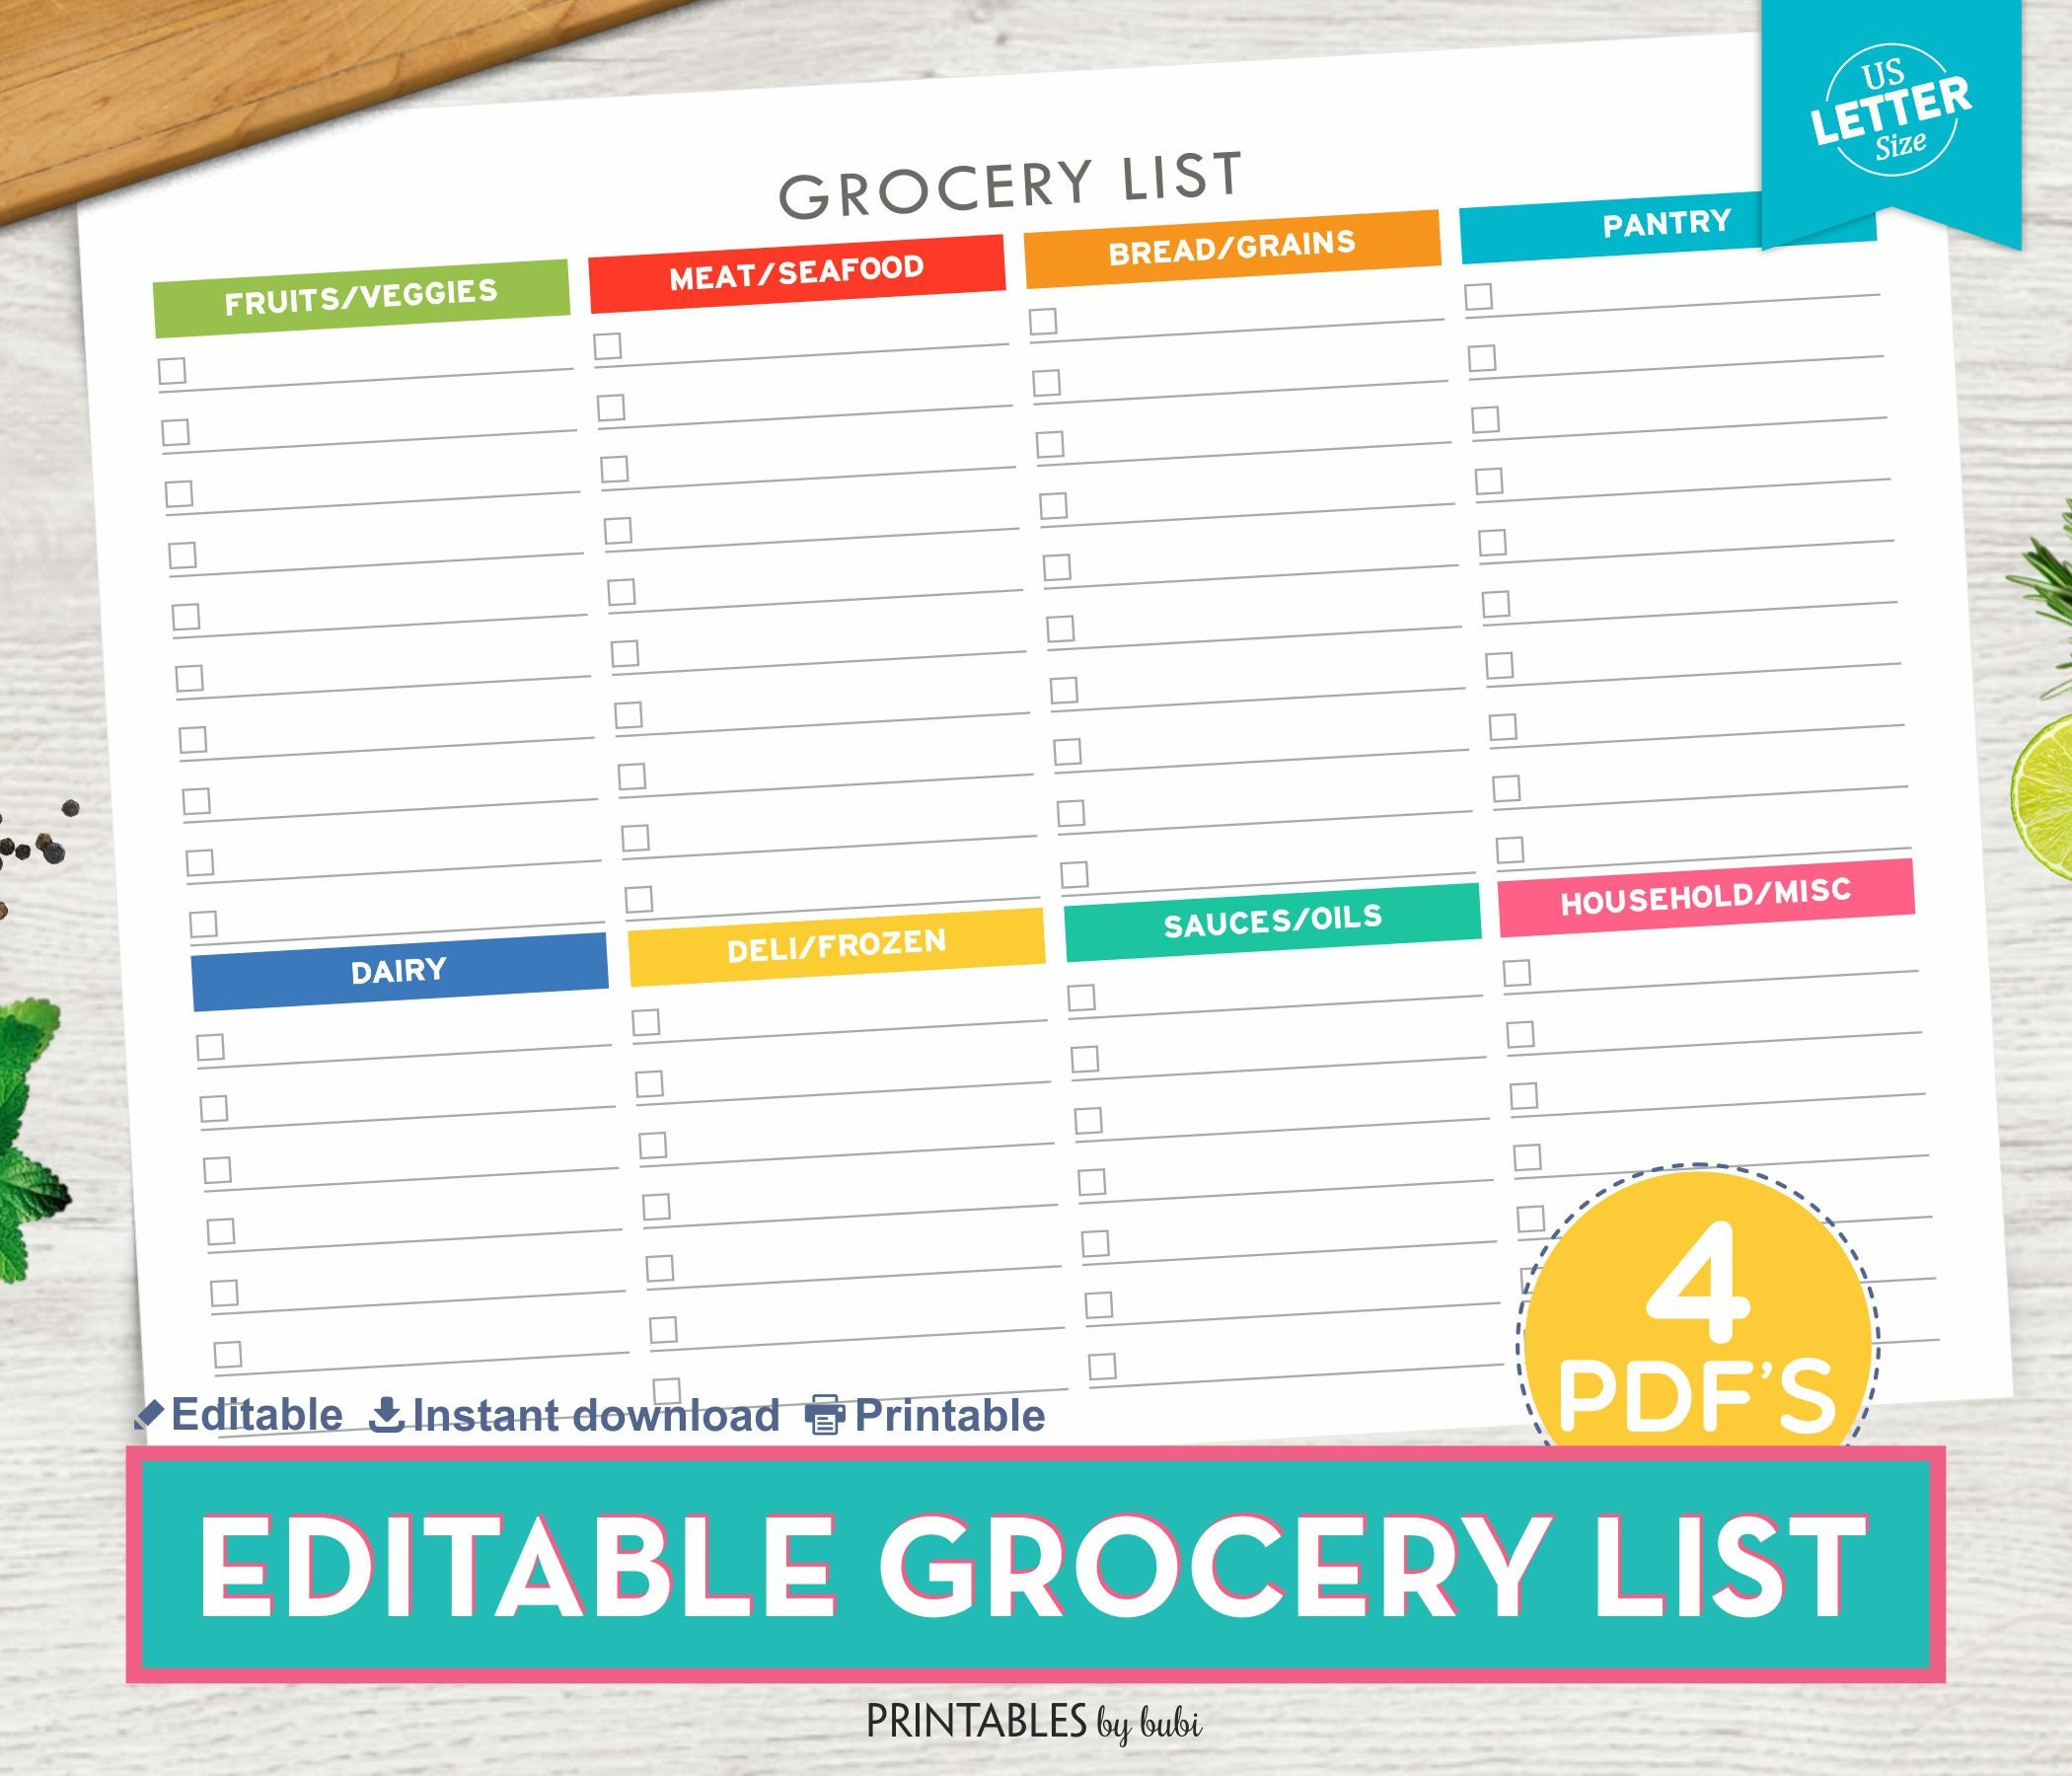 grocery list editable shopping list printable grocery list | etsy